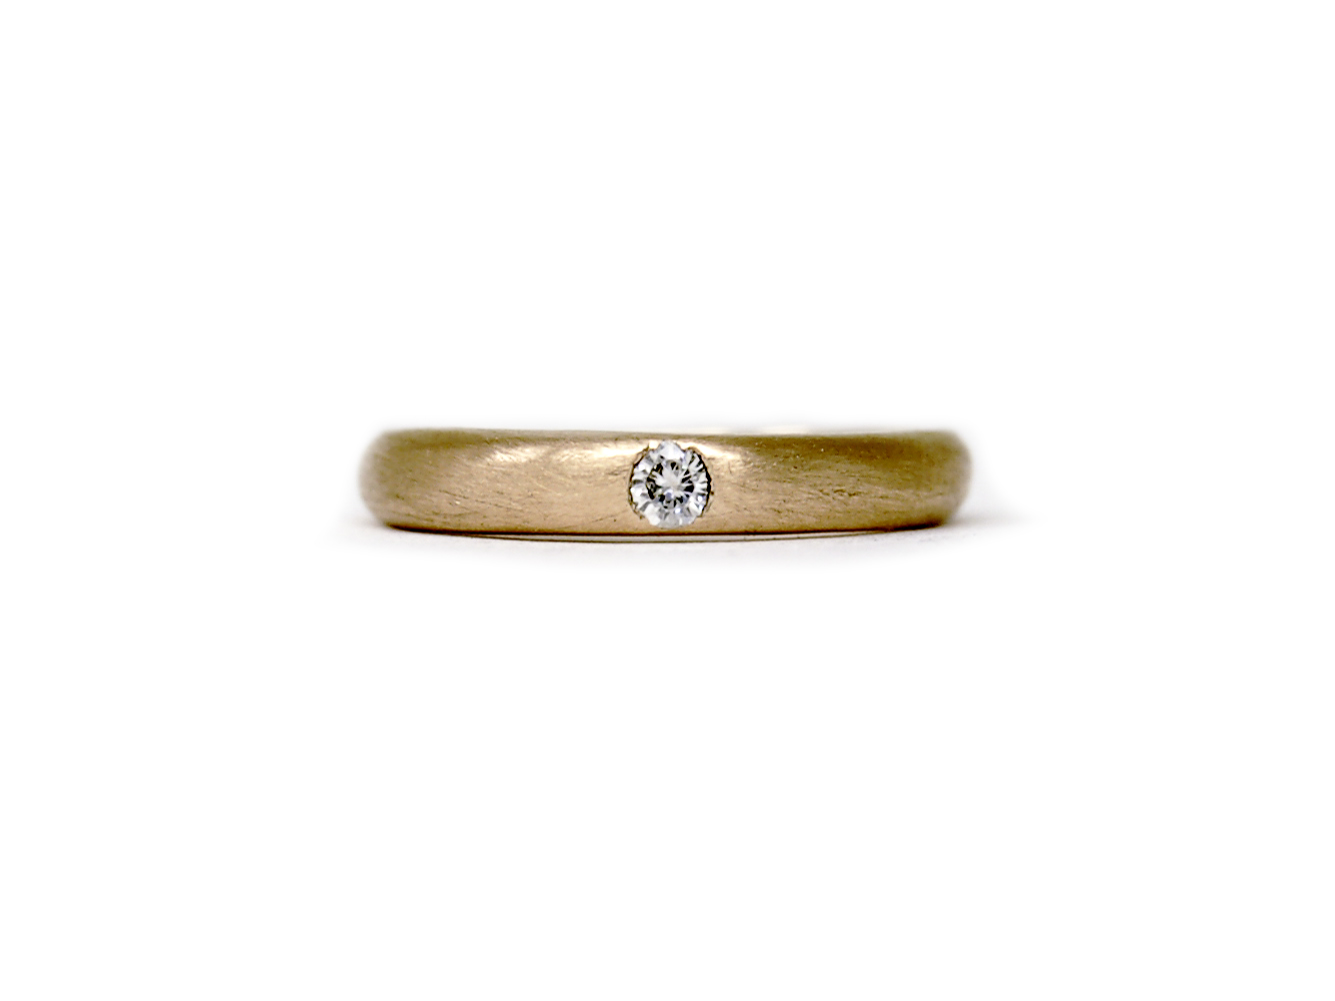 Rose gold understated engagement ring featuring an ethical Moissanite stone